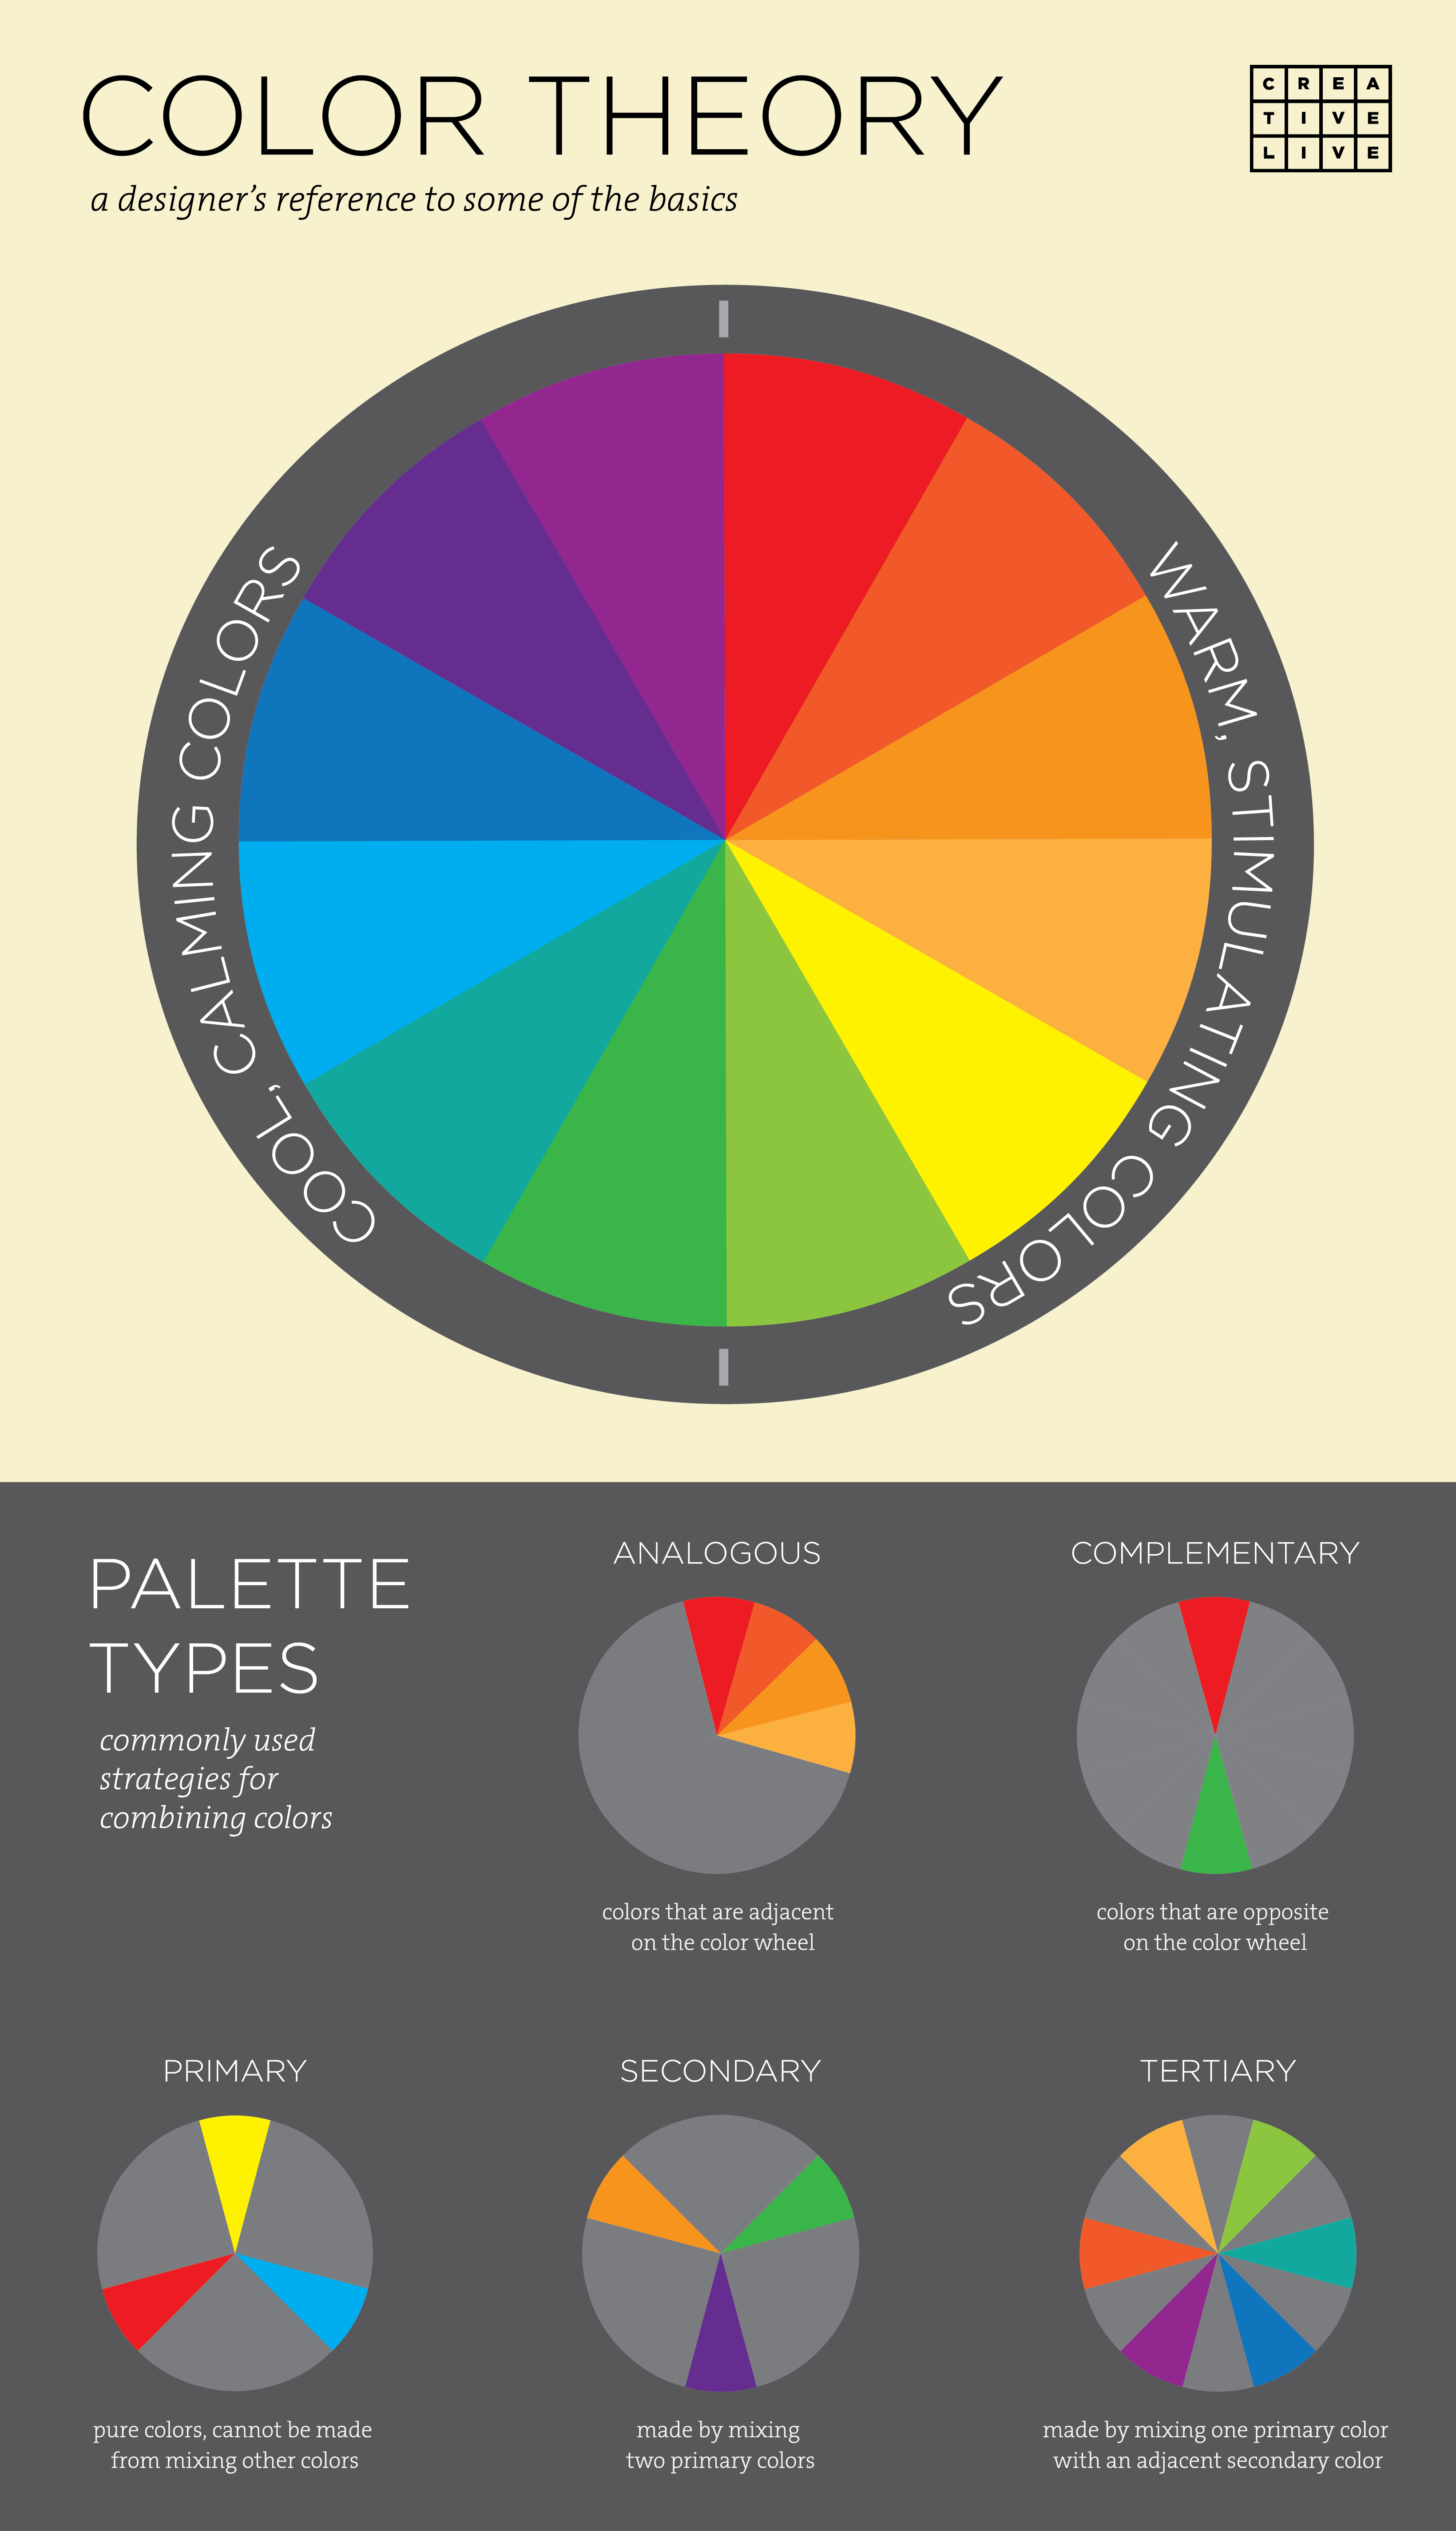 This Helpful Infographic On Color Theory For Designers Is Brought To You By Richard Mehl And